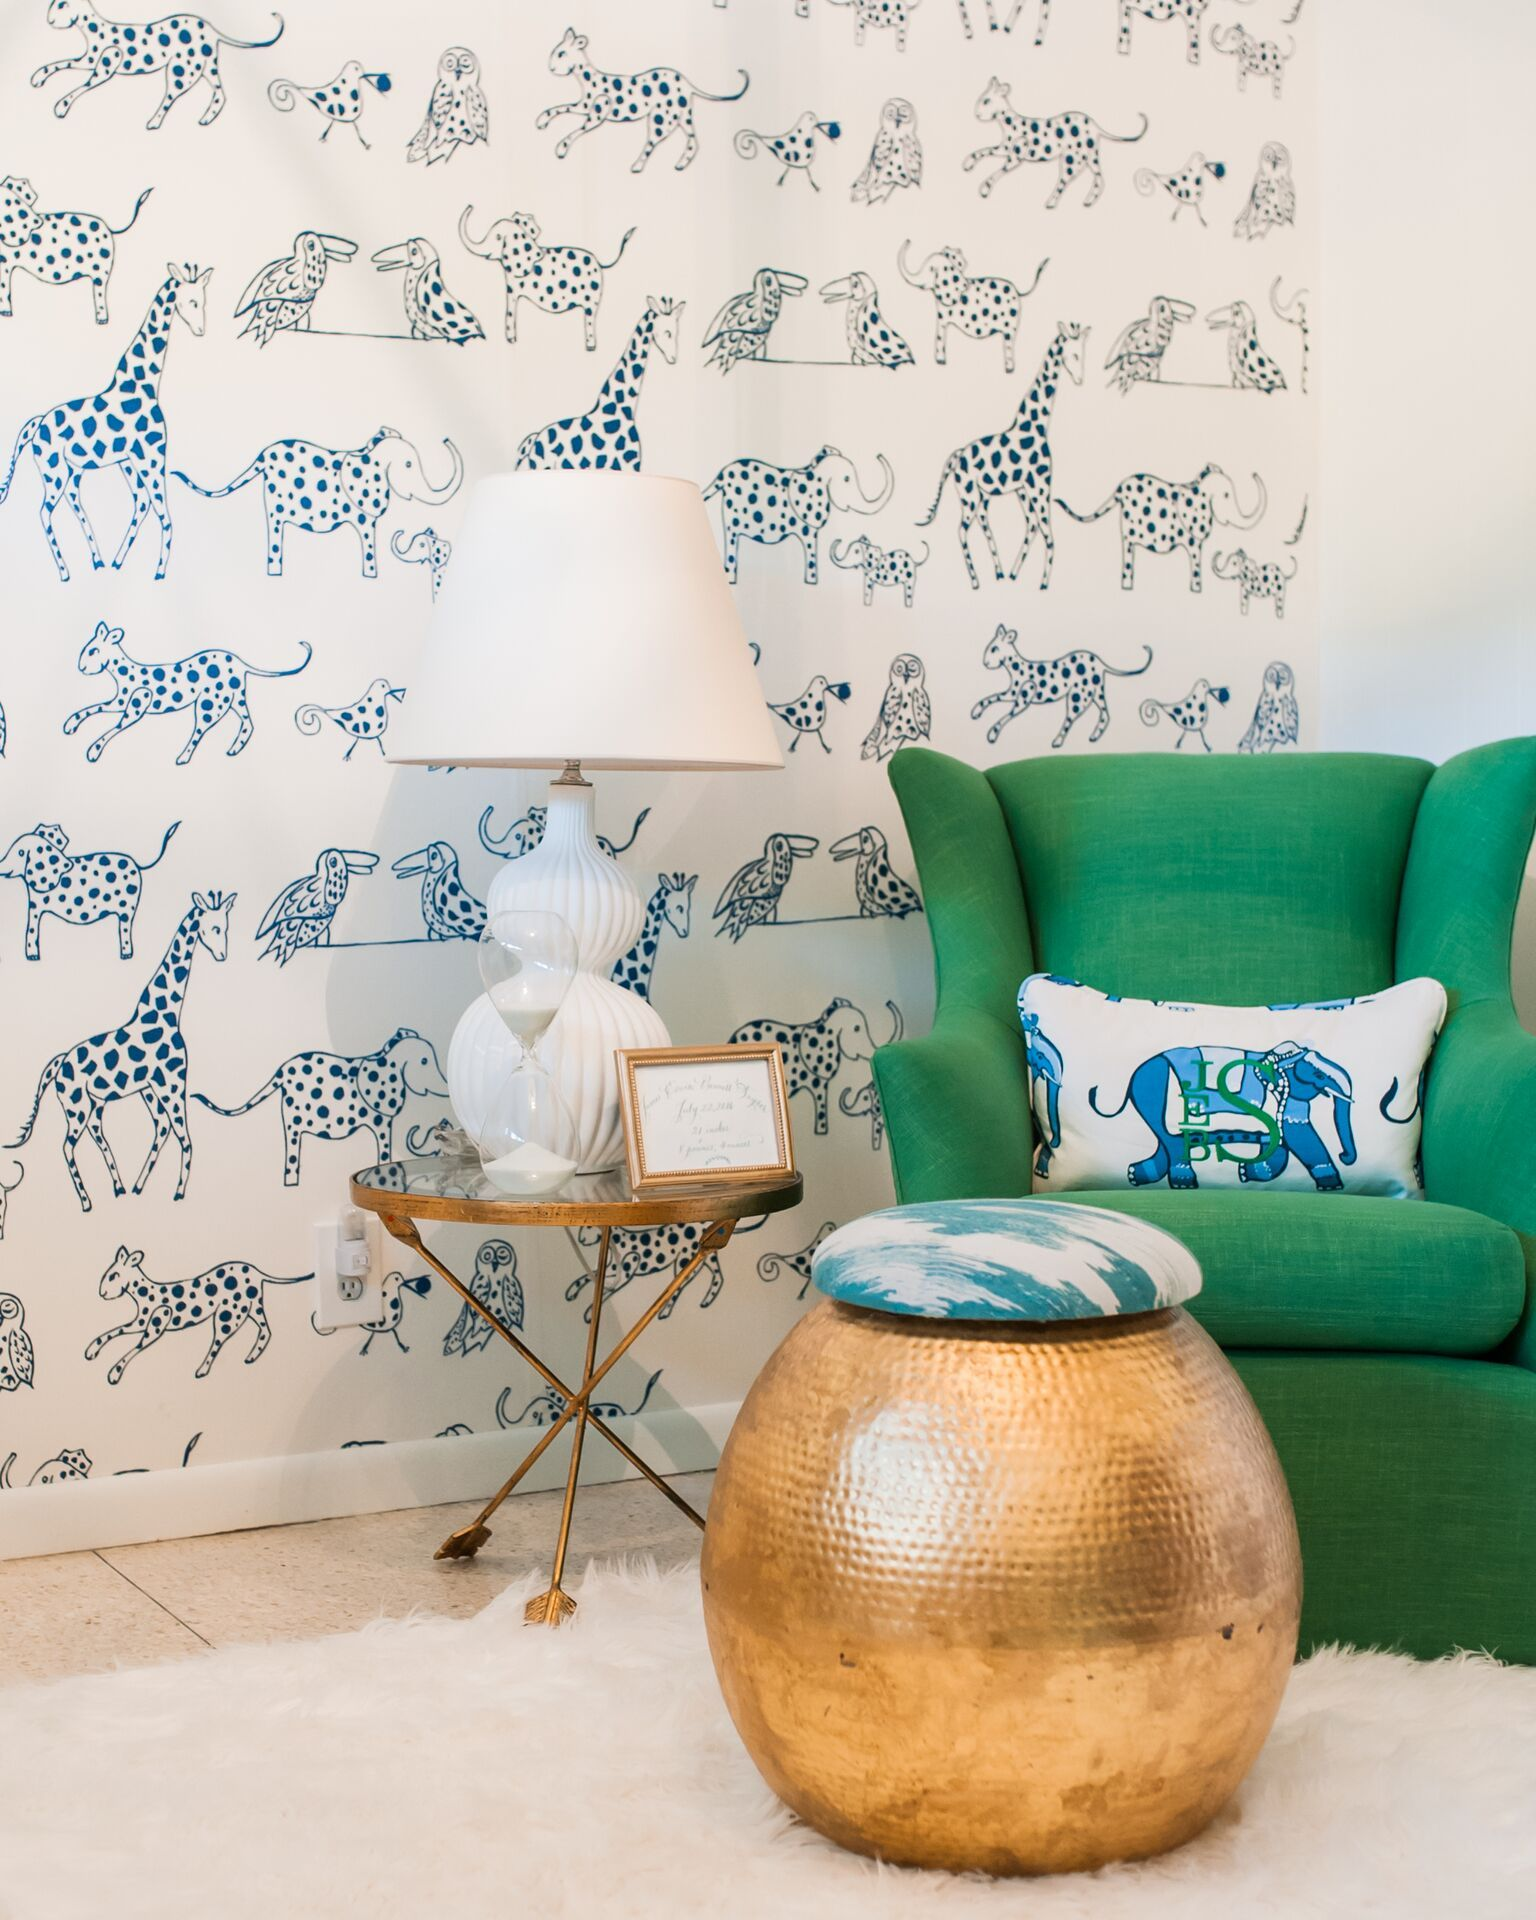 Betsey Mosby Interior Design | Jackson, MS | Sweet And Sophisticated  Nursery With Illustrated Animal